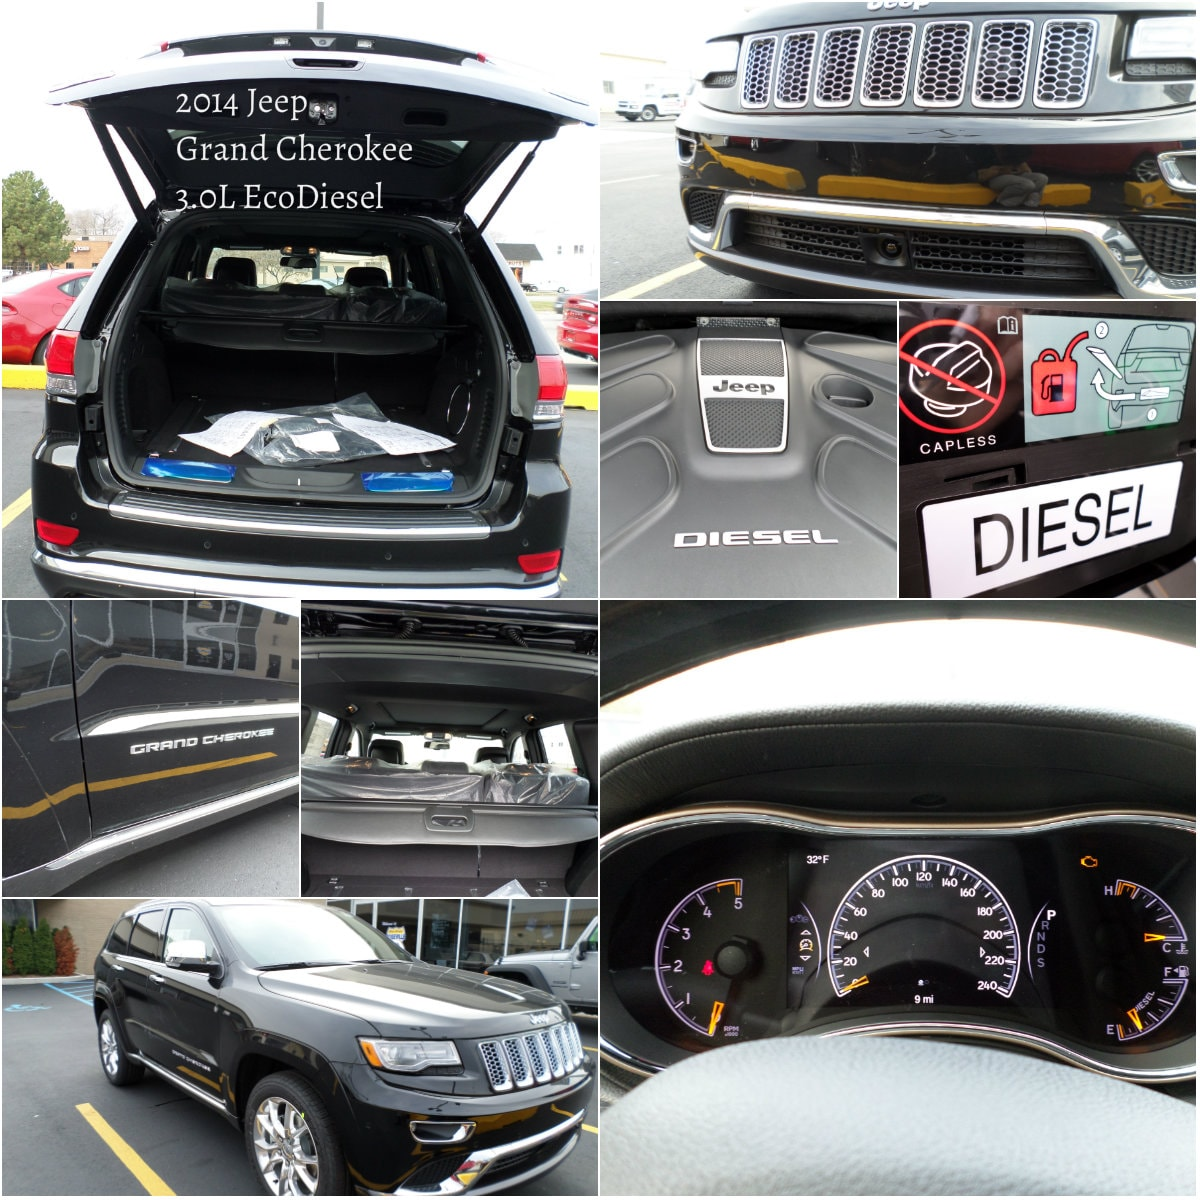 Facts About The 2014 Jeep Grand Cherokee Award Winning